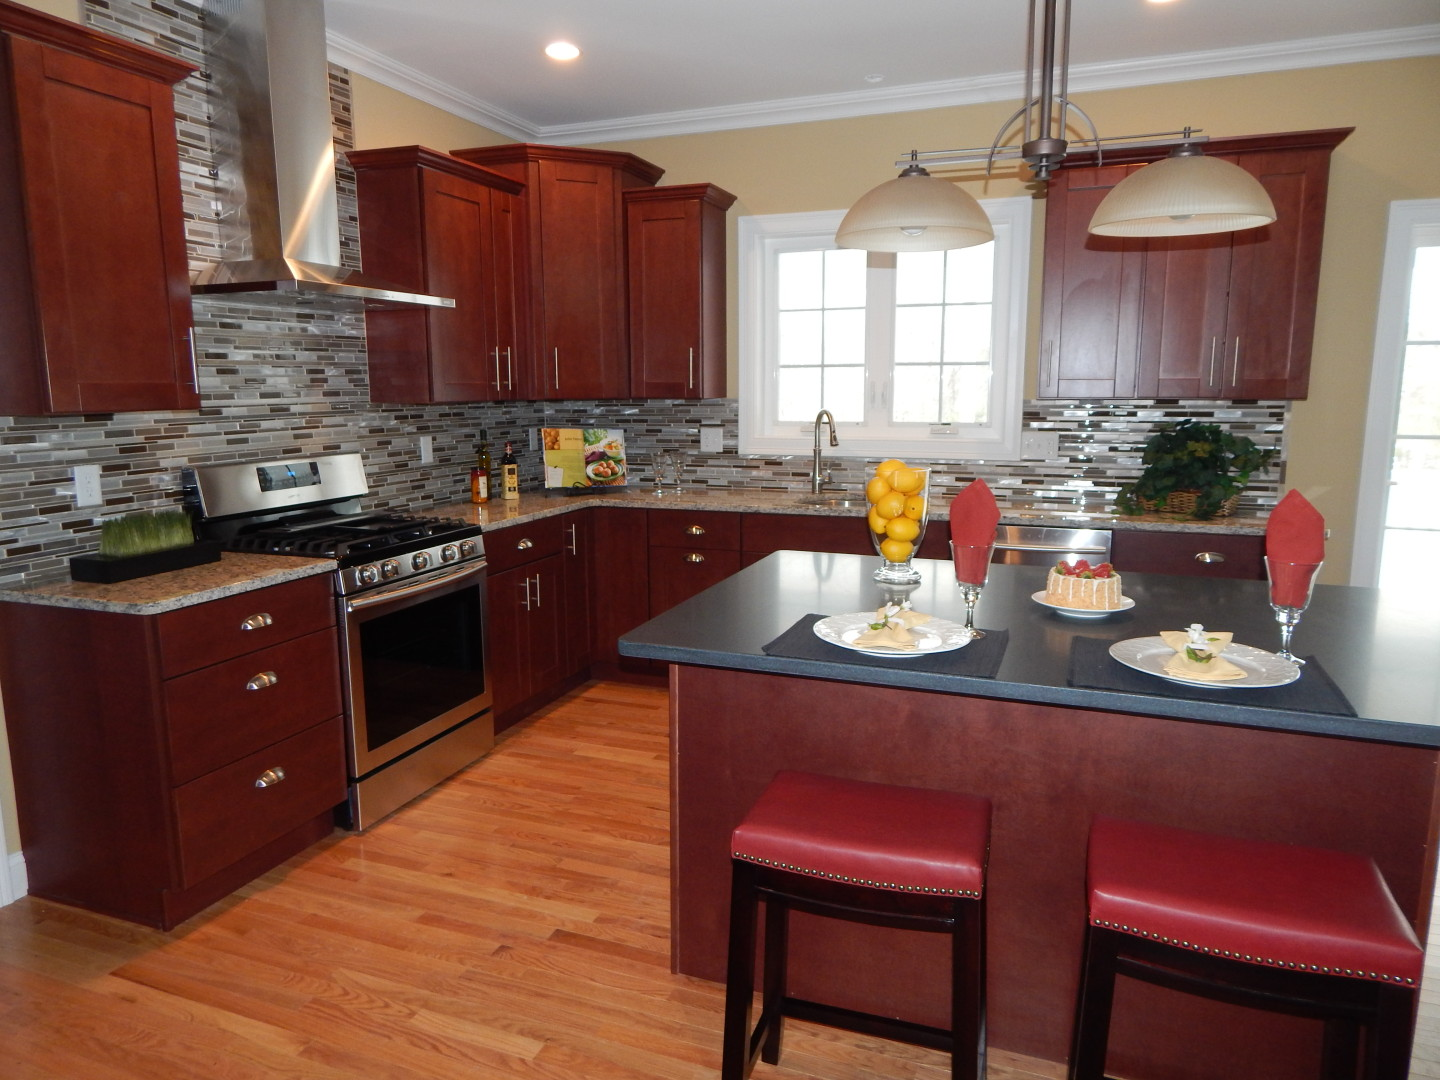 View Examples Of Our Work Pj Company Staging And Interior Decorating